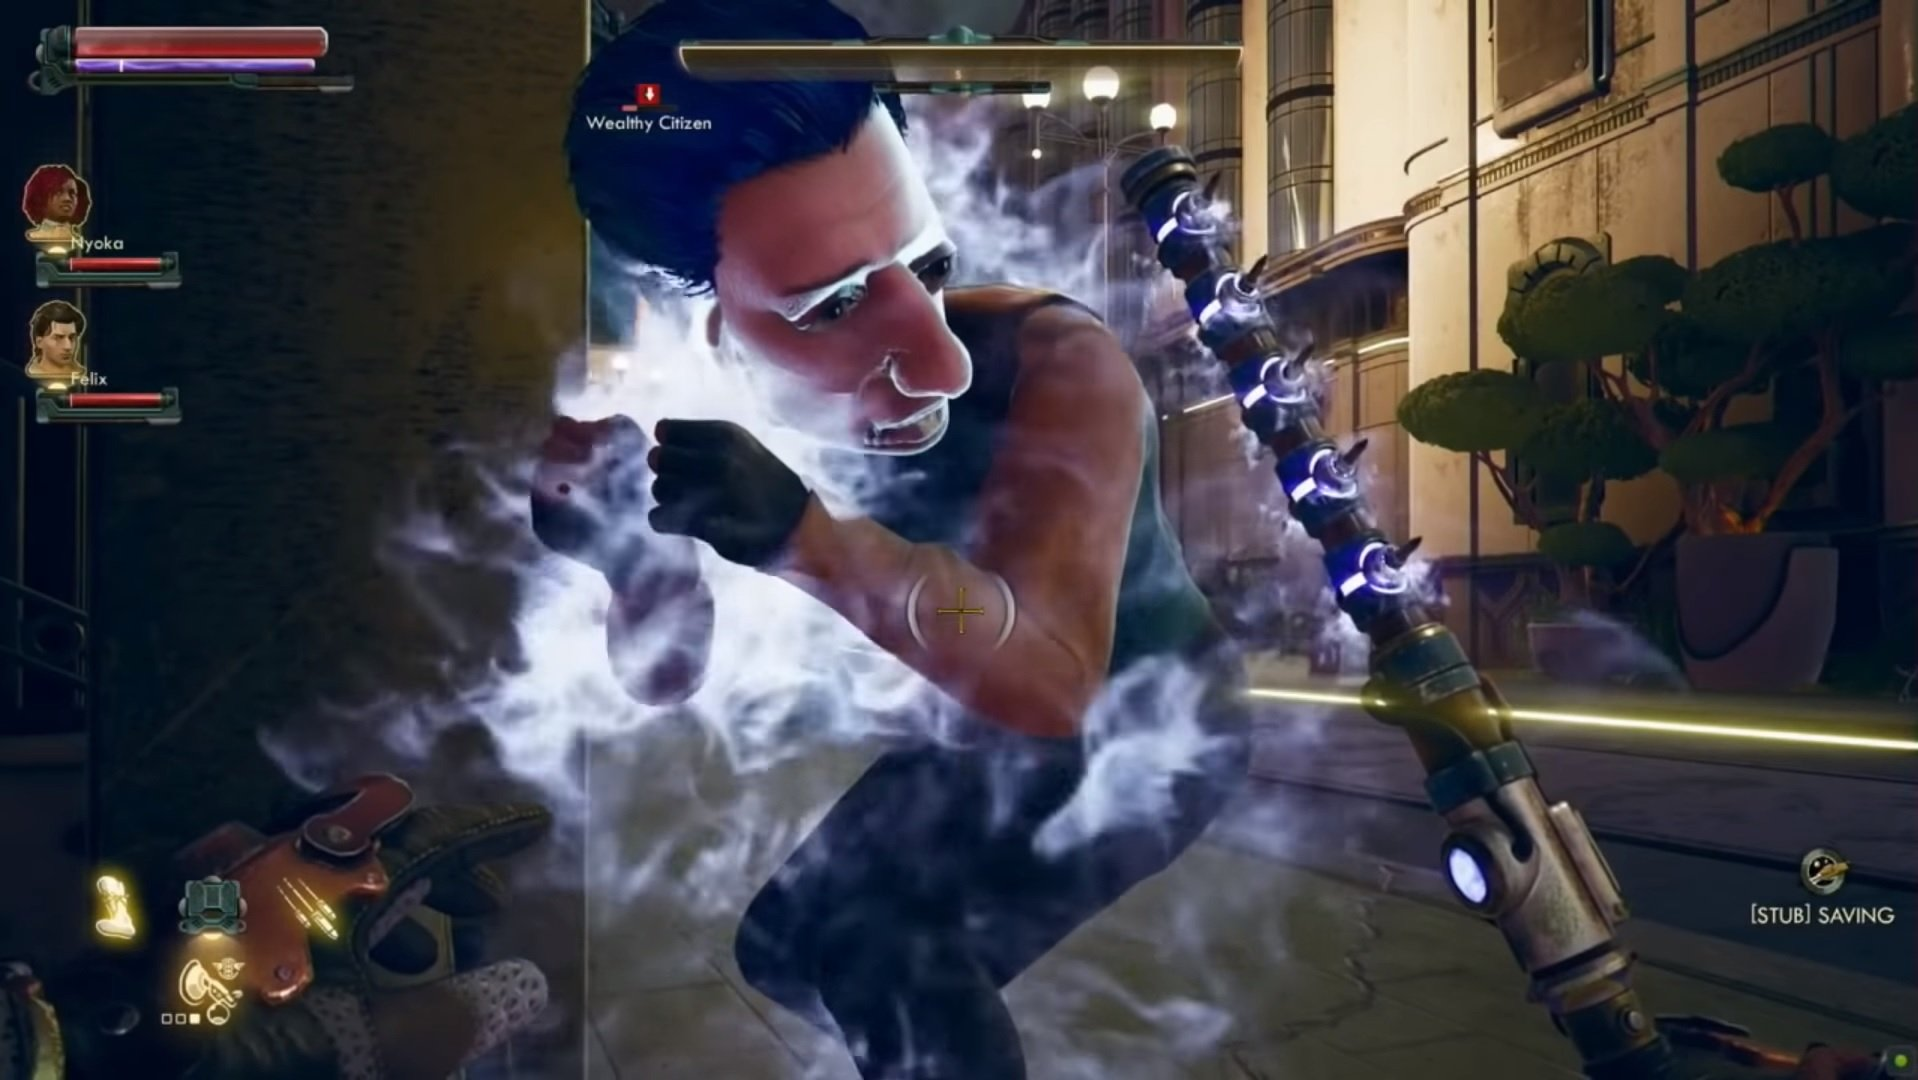 Obsidian's Outer Worlds has a melee weapon that literally rearranges